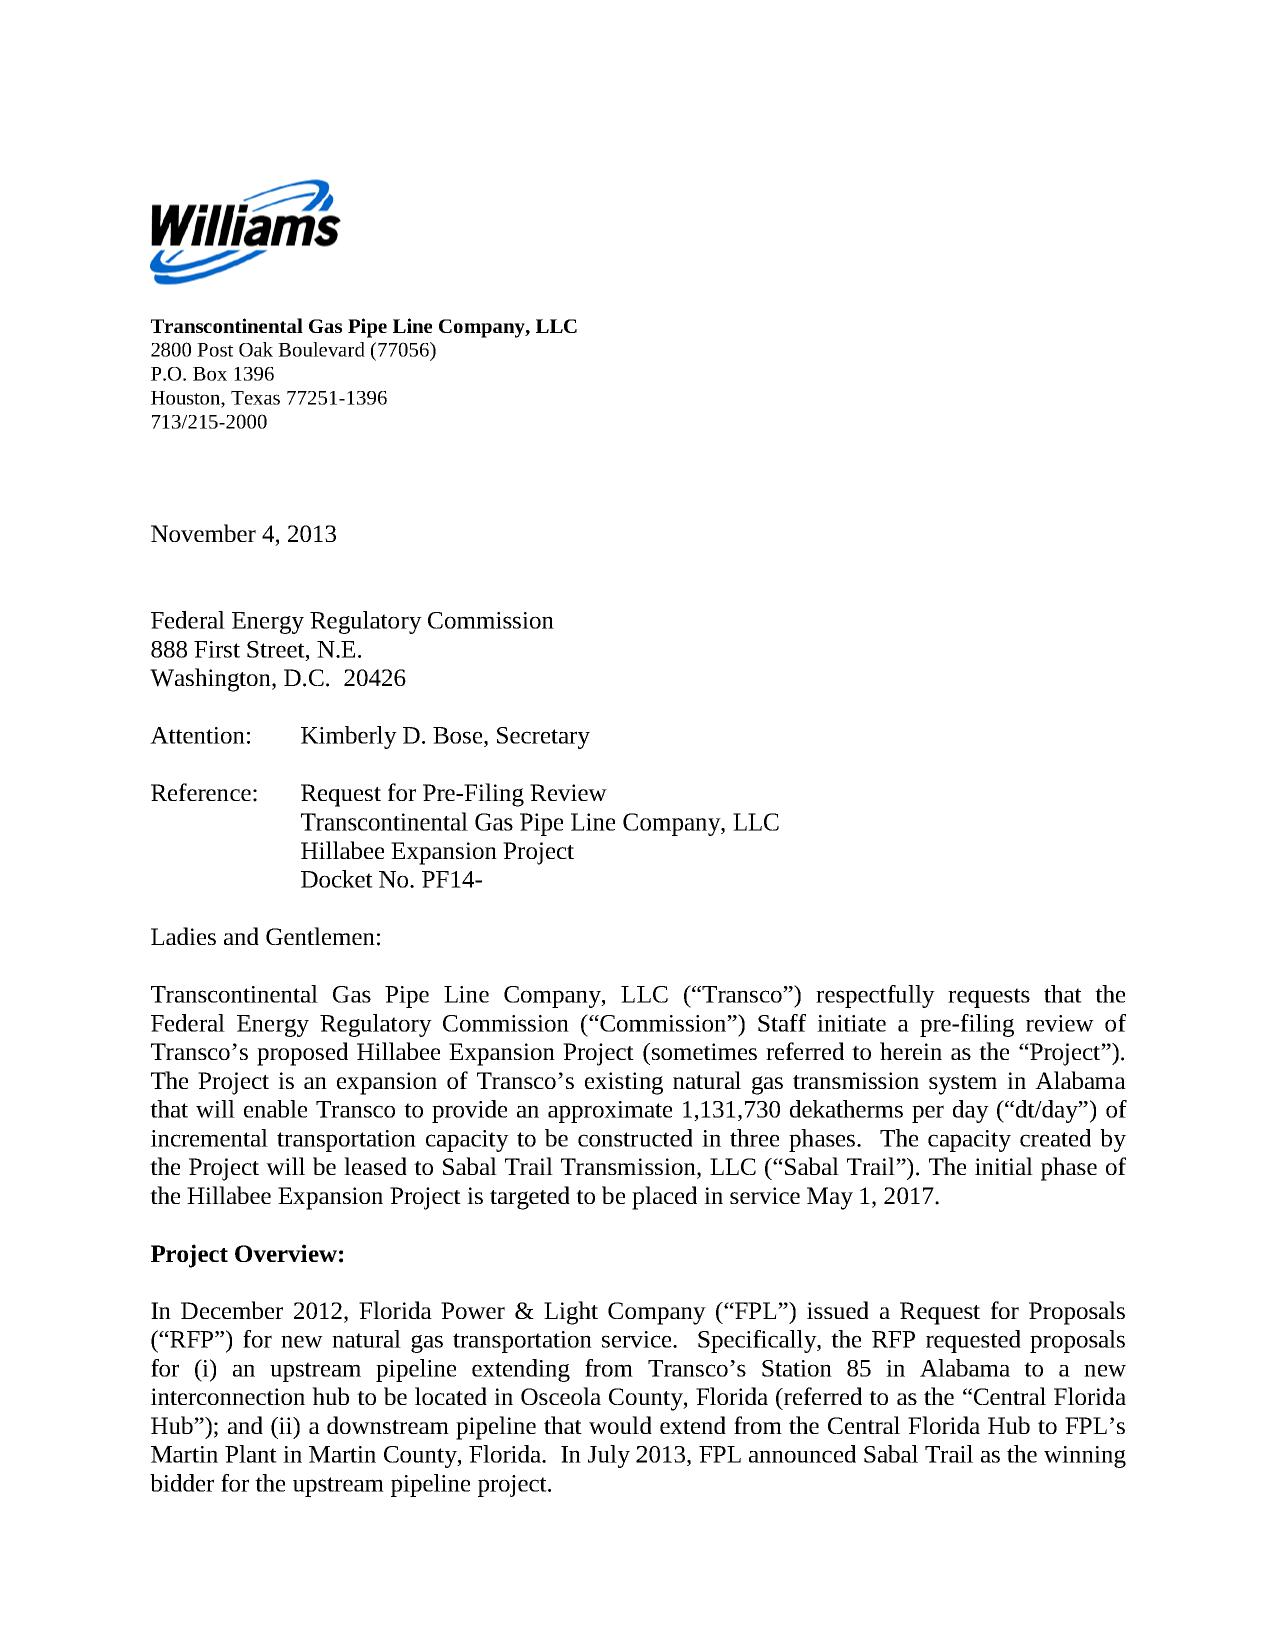 project overview in request for pre filing review by transcontinental gas pipe line - Cover Letter To Company